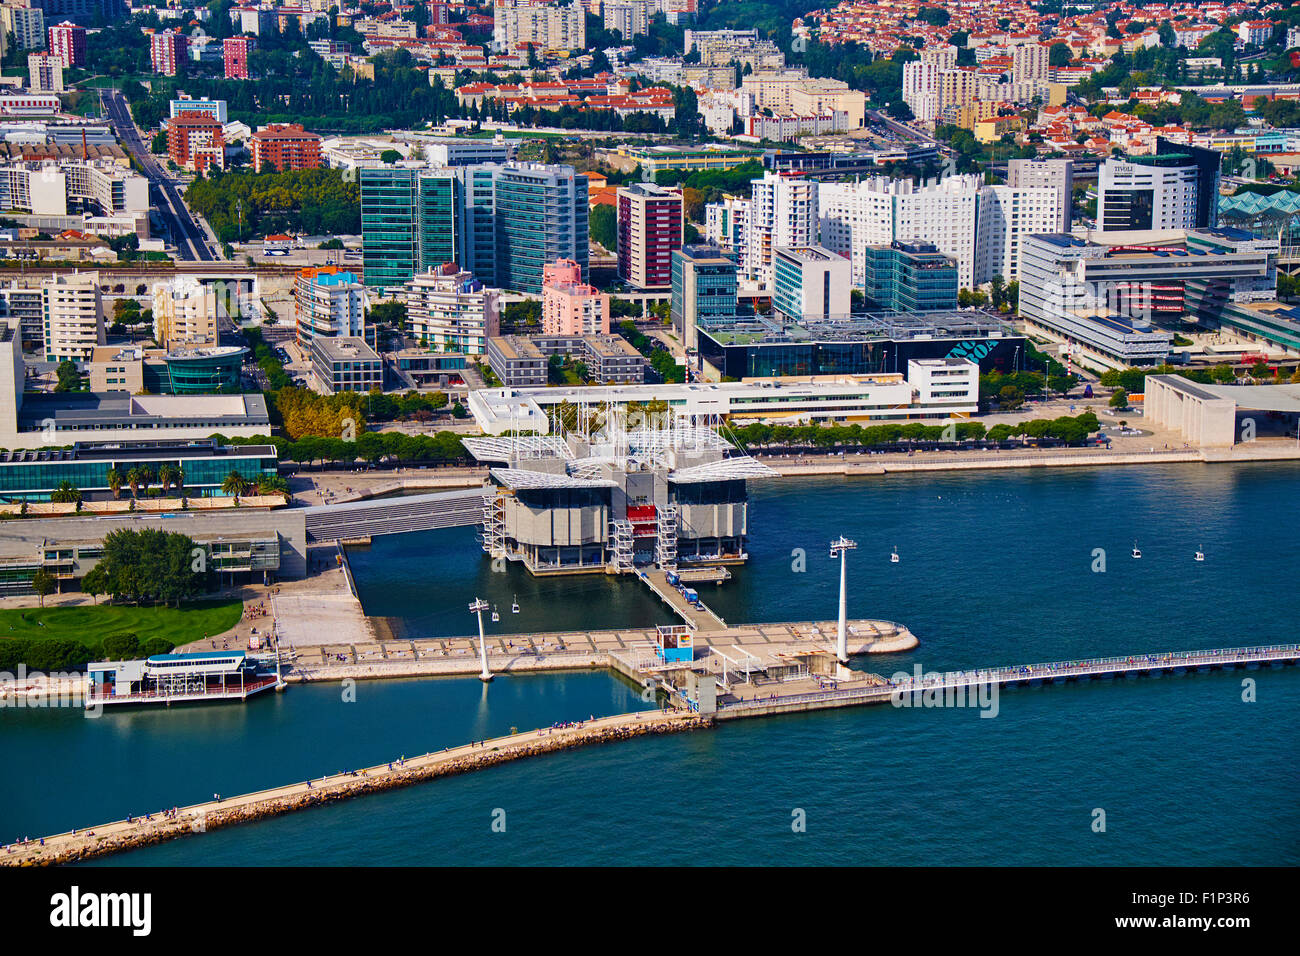 Portugal, Lisbon, the Oceanarium (Oceanario de Lisboa) at the Park of Nations (Parque das Nacoes) Stock Photo